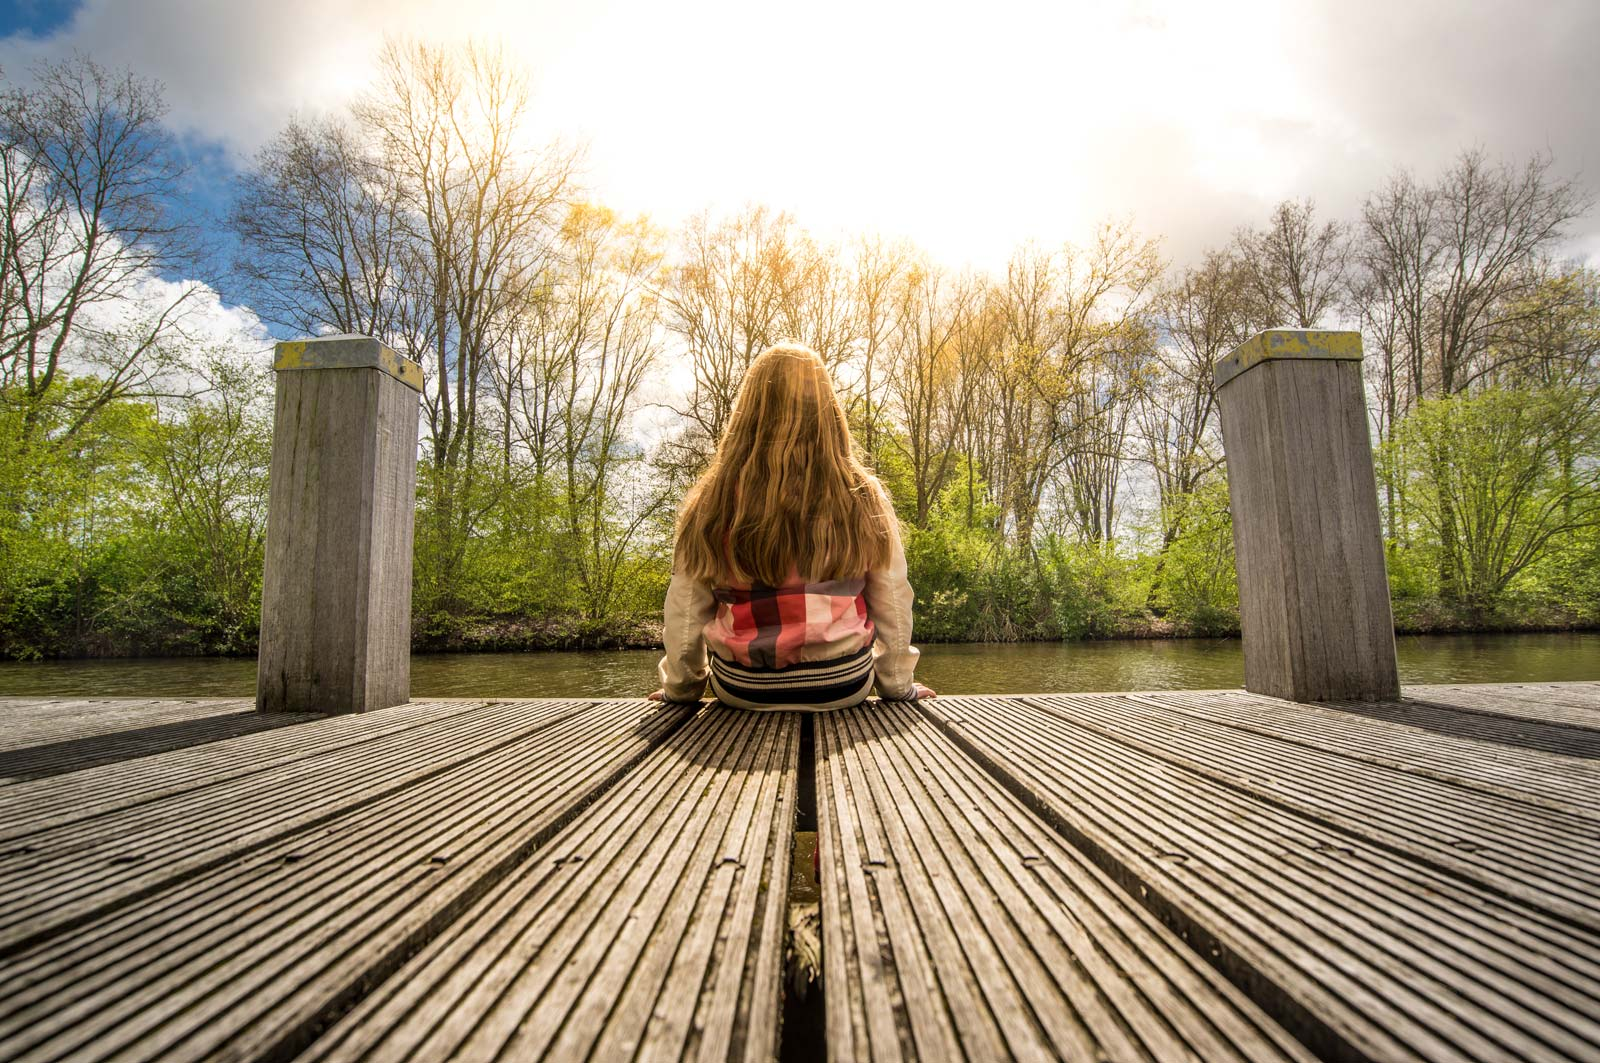 A girl sits on a pier staring into the water.